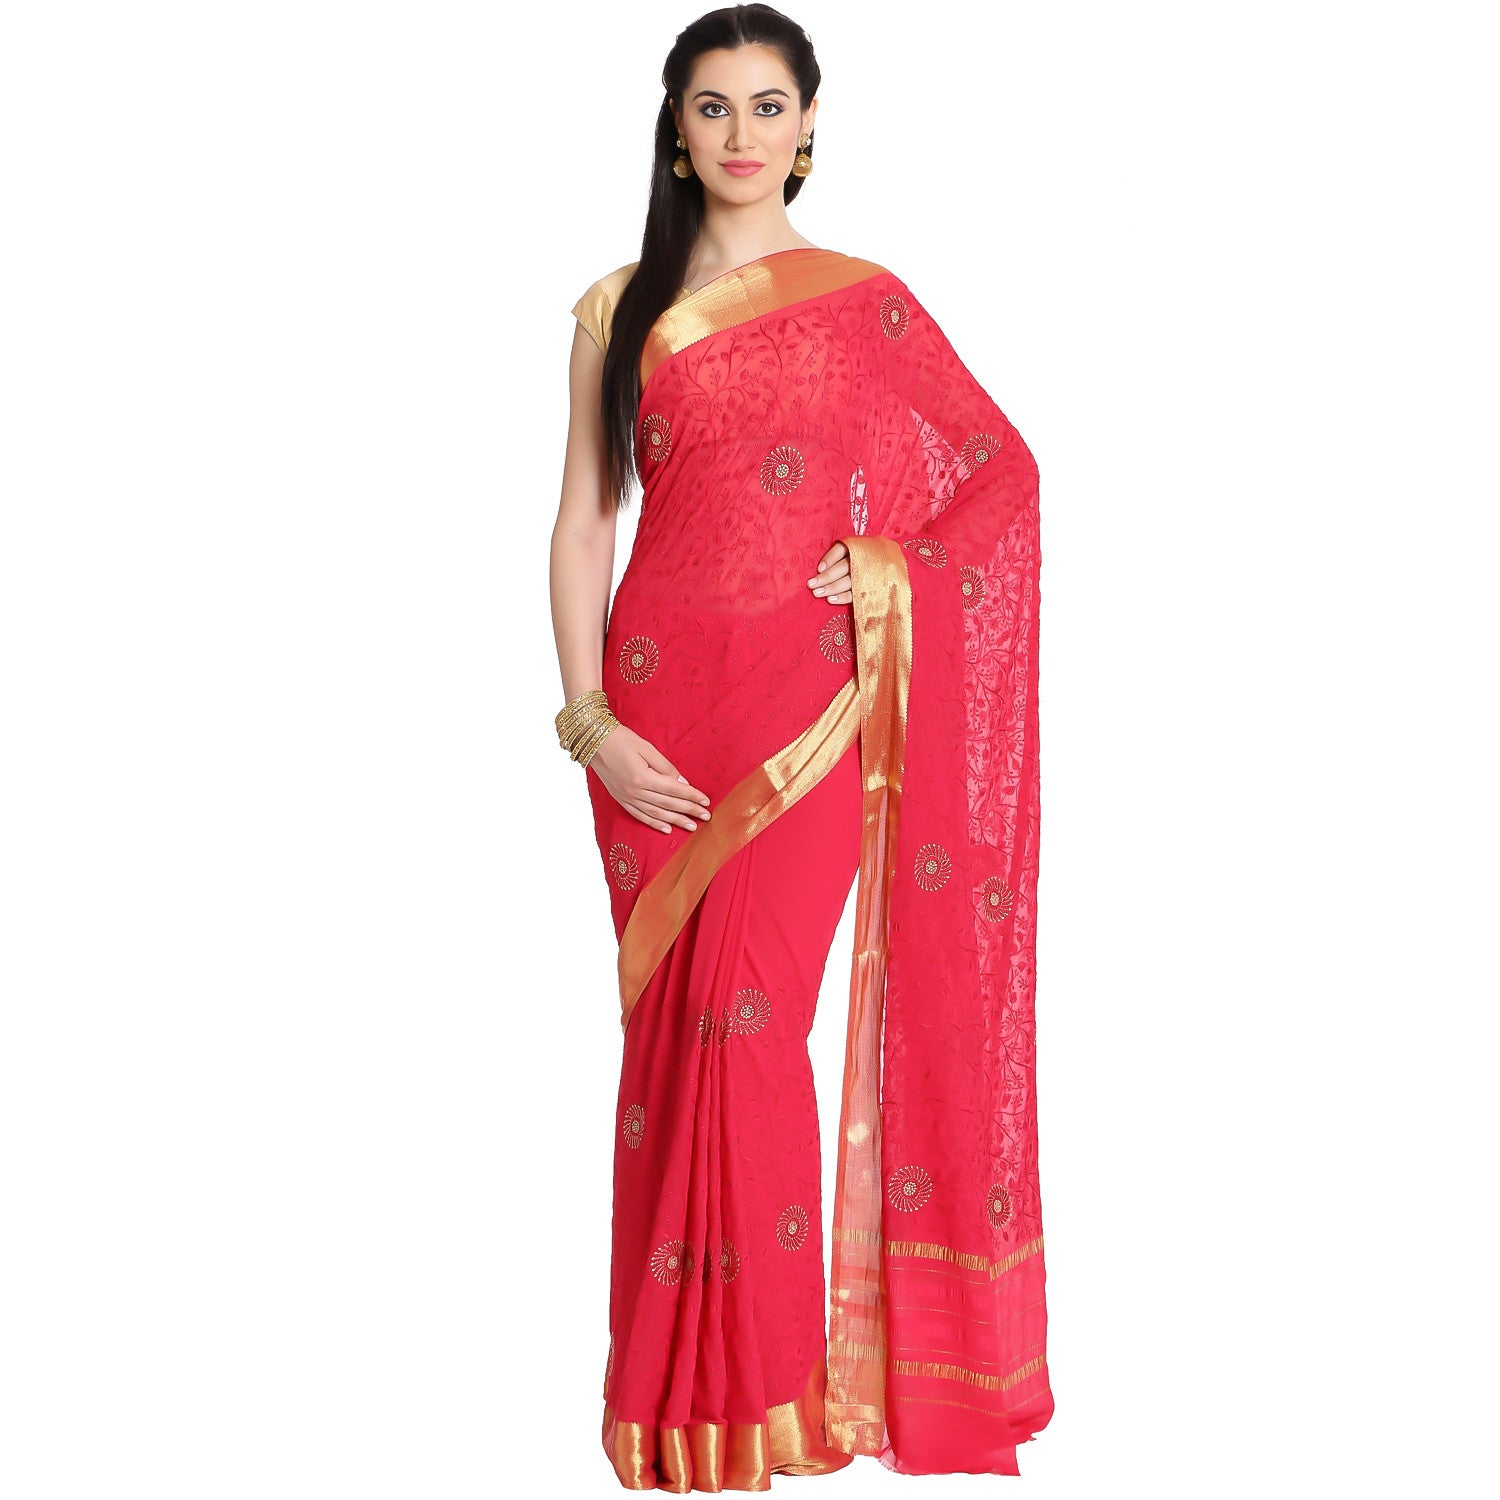 Georgette Saree With Floral Embroidery